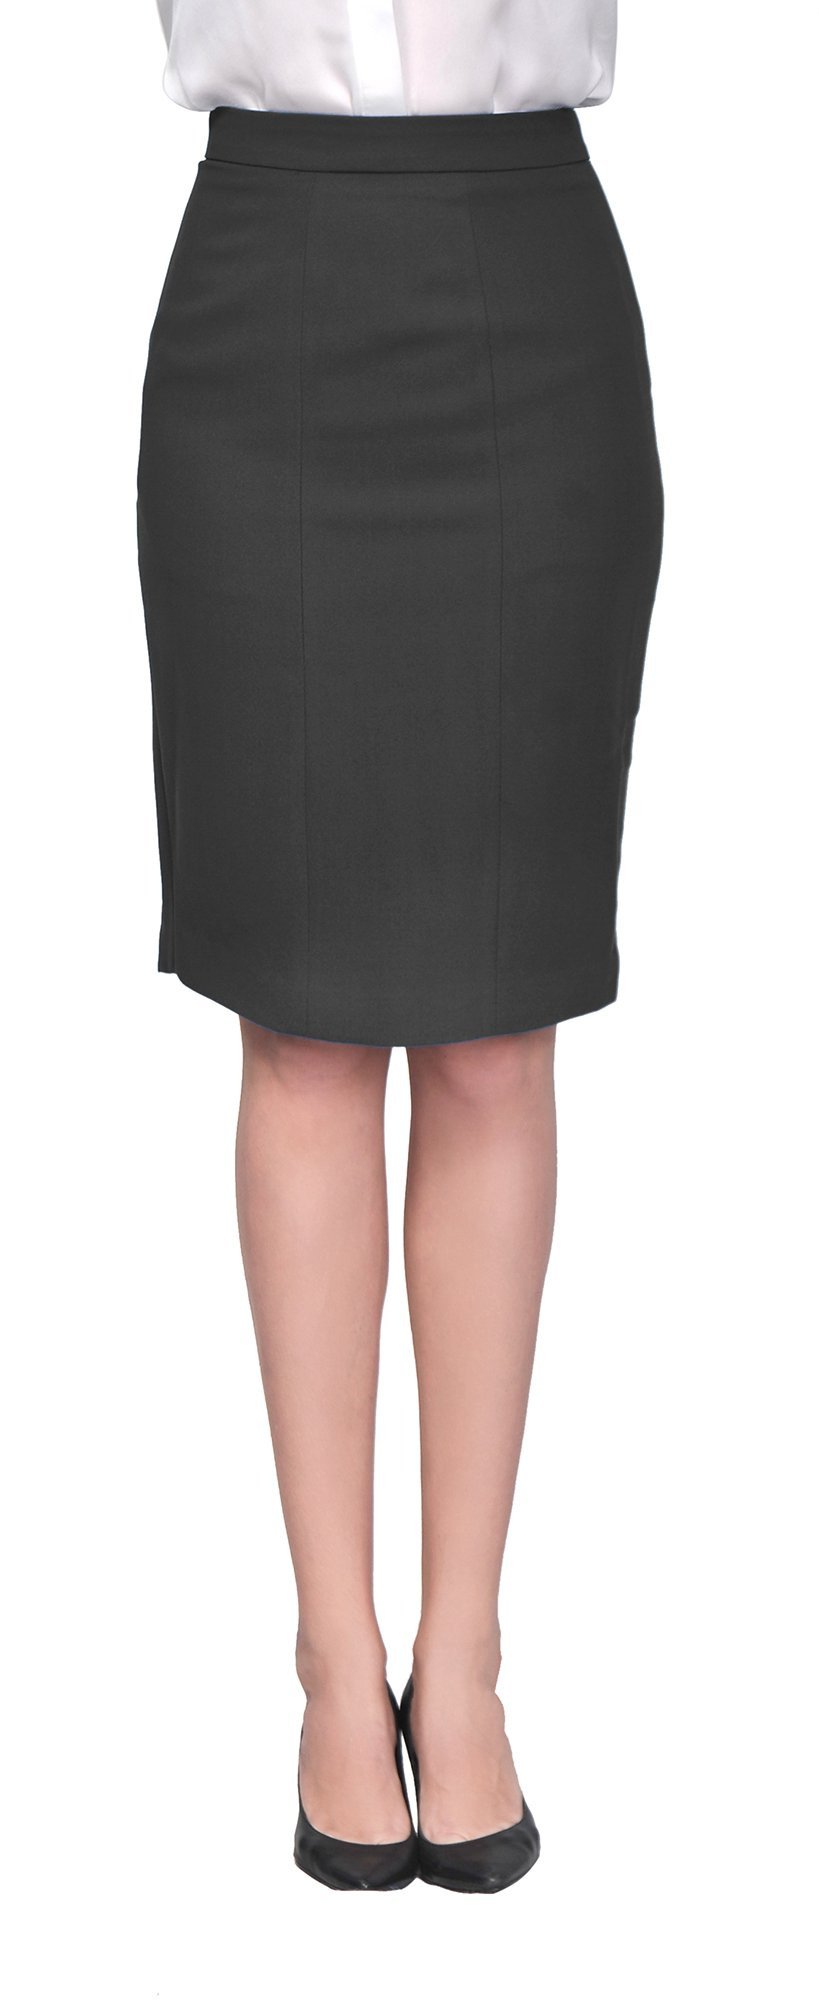 Marycrafts Women's Lined Pencil Skirt 4 Work Business Office 2 black